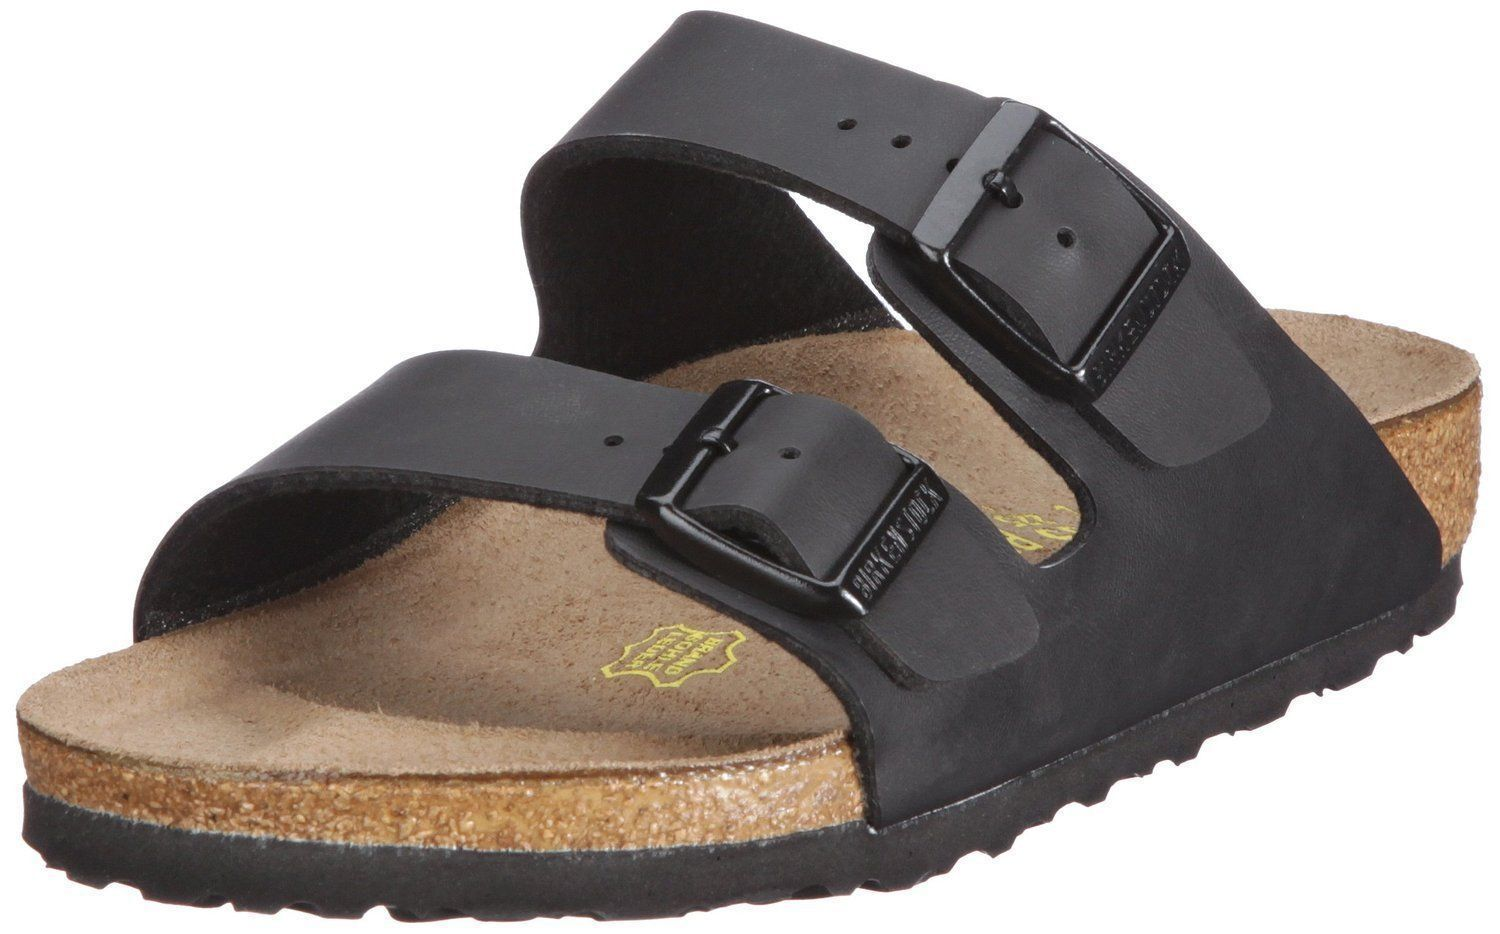 Birkenstock is a german shoe company that was founded in 1774 and has manufactured high quality shoes and sandals ever since birkenstock became popular in